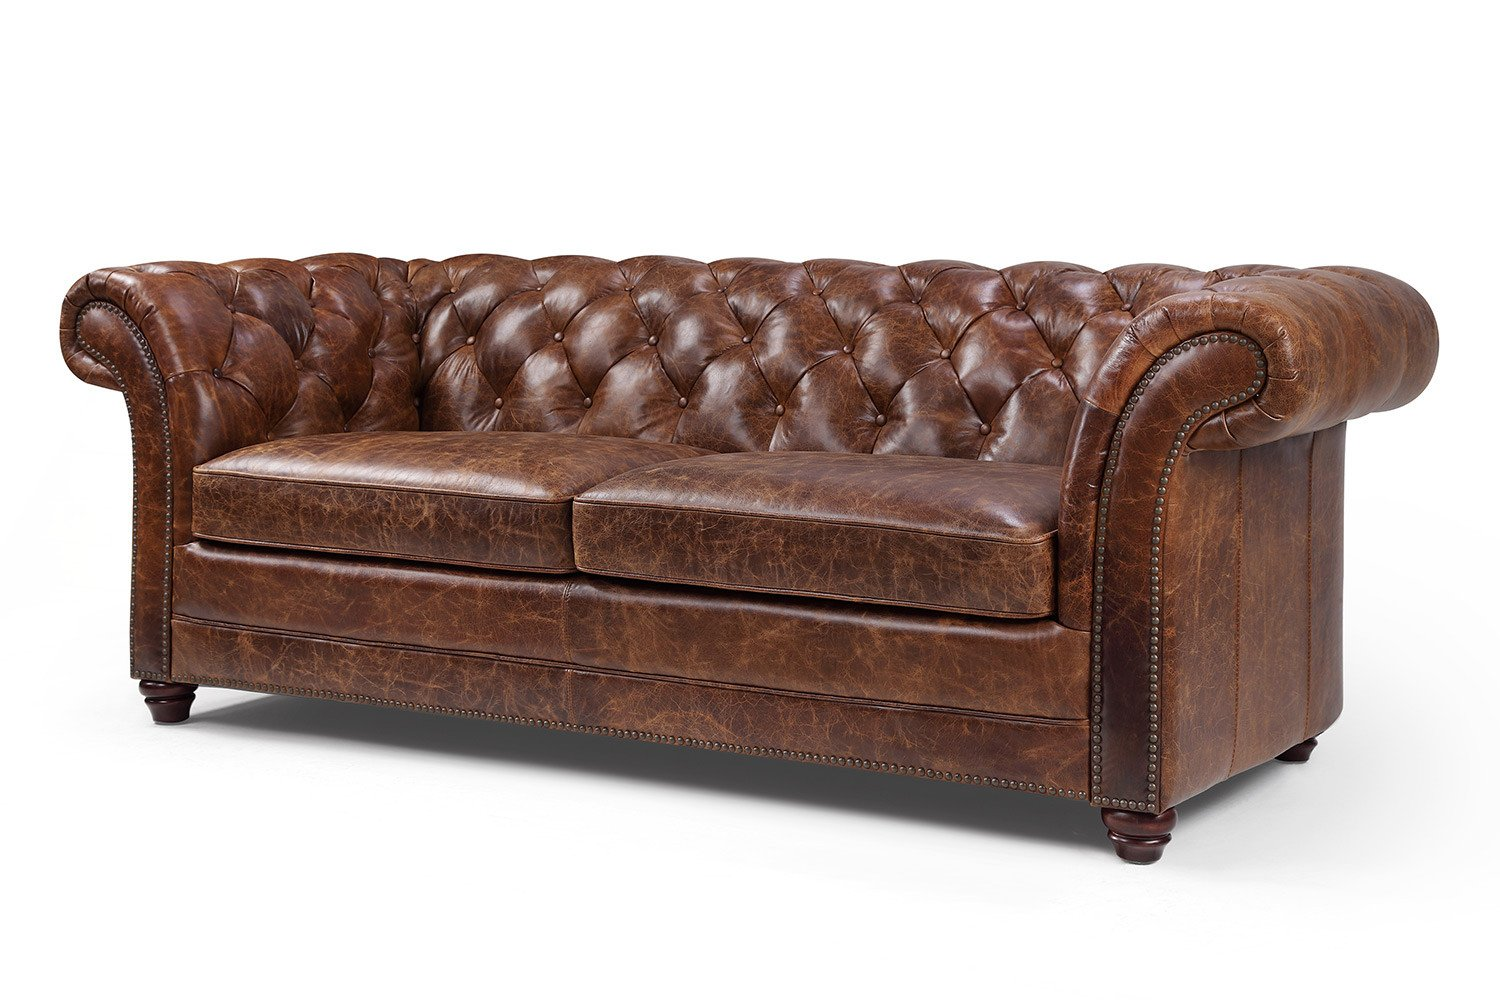 Amazon Com Westminster Chesterfield Leather Sofa By Rose Moore  ~ Brown Leather Sofa With Studs